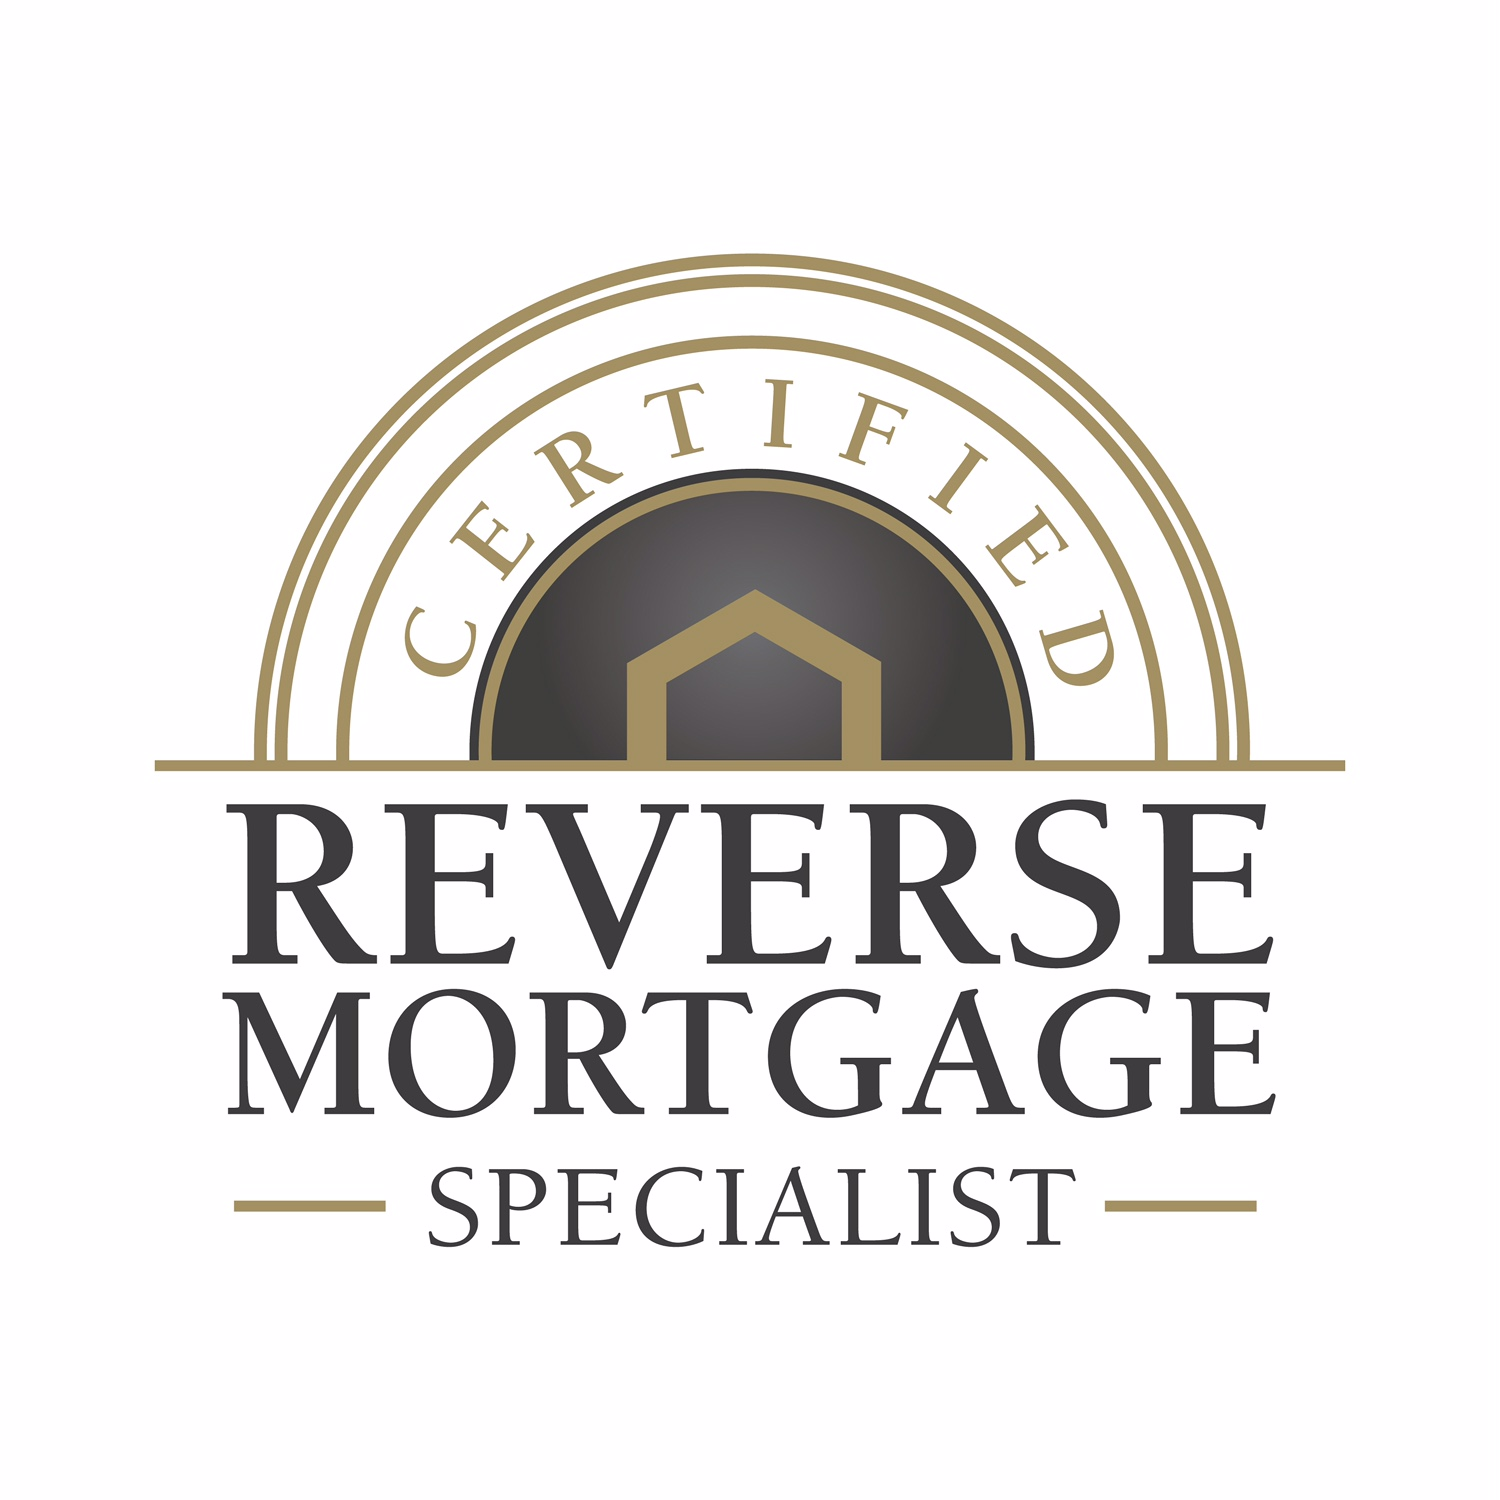 Reverse Mortgage Specialist Logo - Mortgage Lender Gerard Buckely of Jaguar Mortgages for Wasaga Beach, Collingwood, & Thornbury.